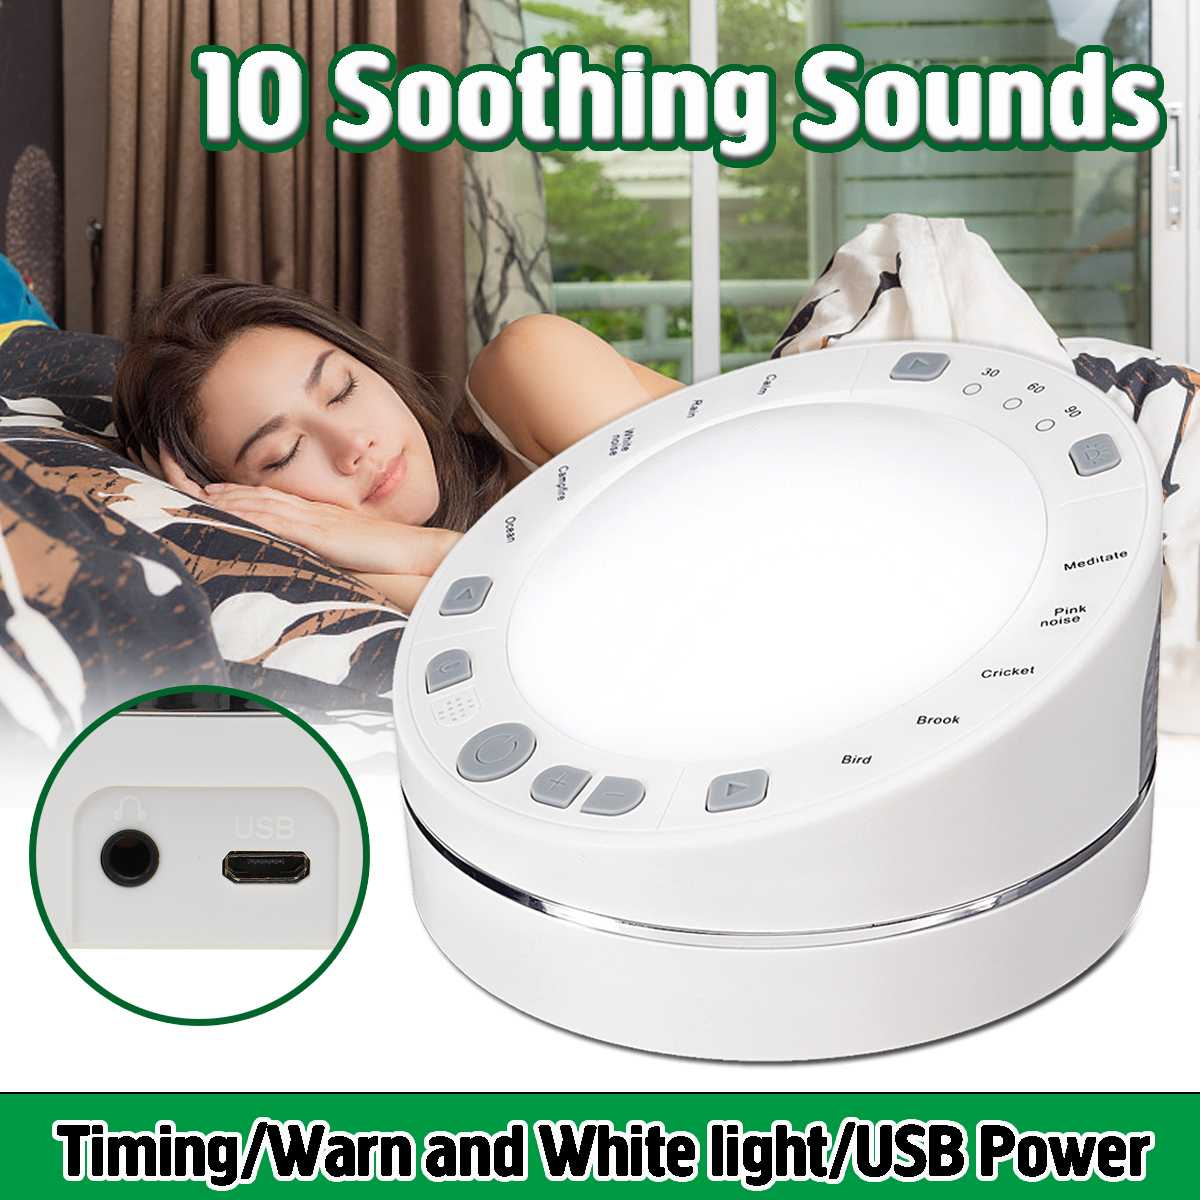 Noise Sleep Instrument 10 Nature Sound Therapy USB Battery Powered White Noise Machine Sound Machine For Sleeping Relaxation